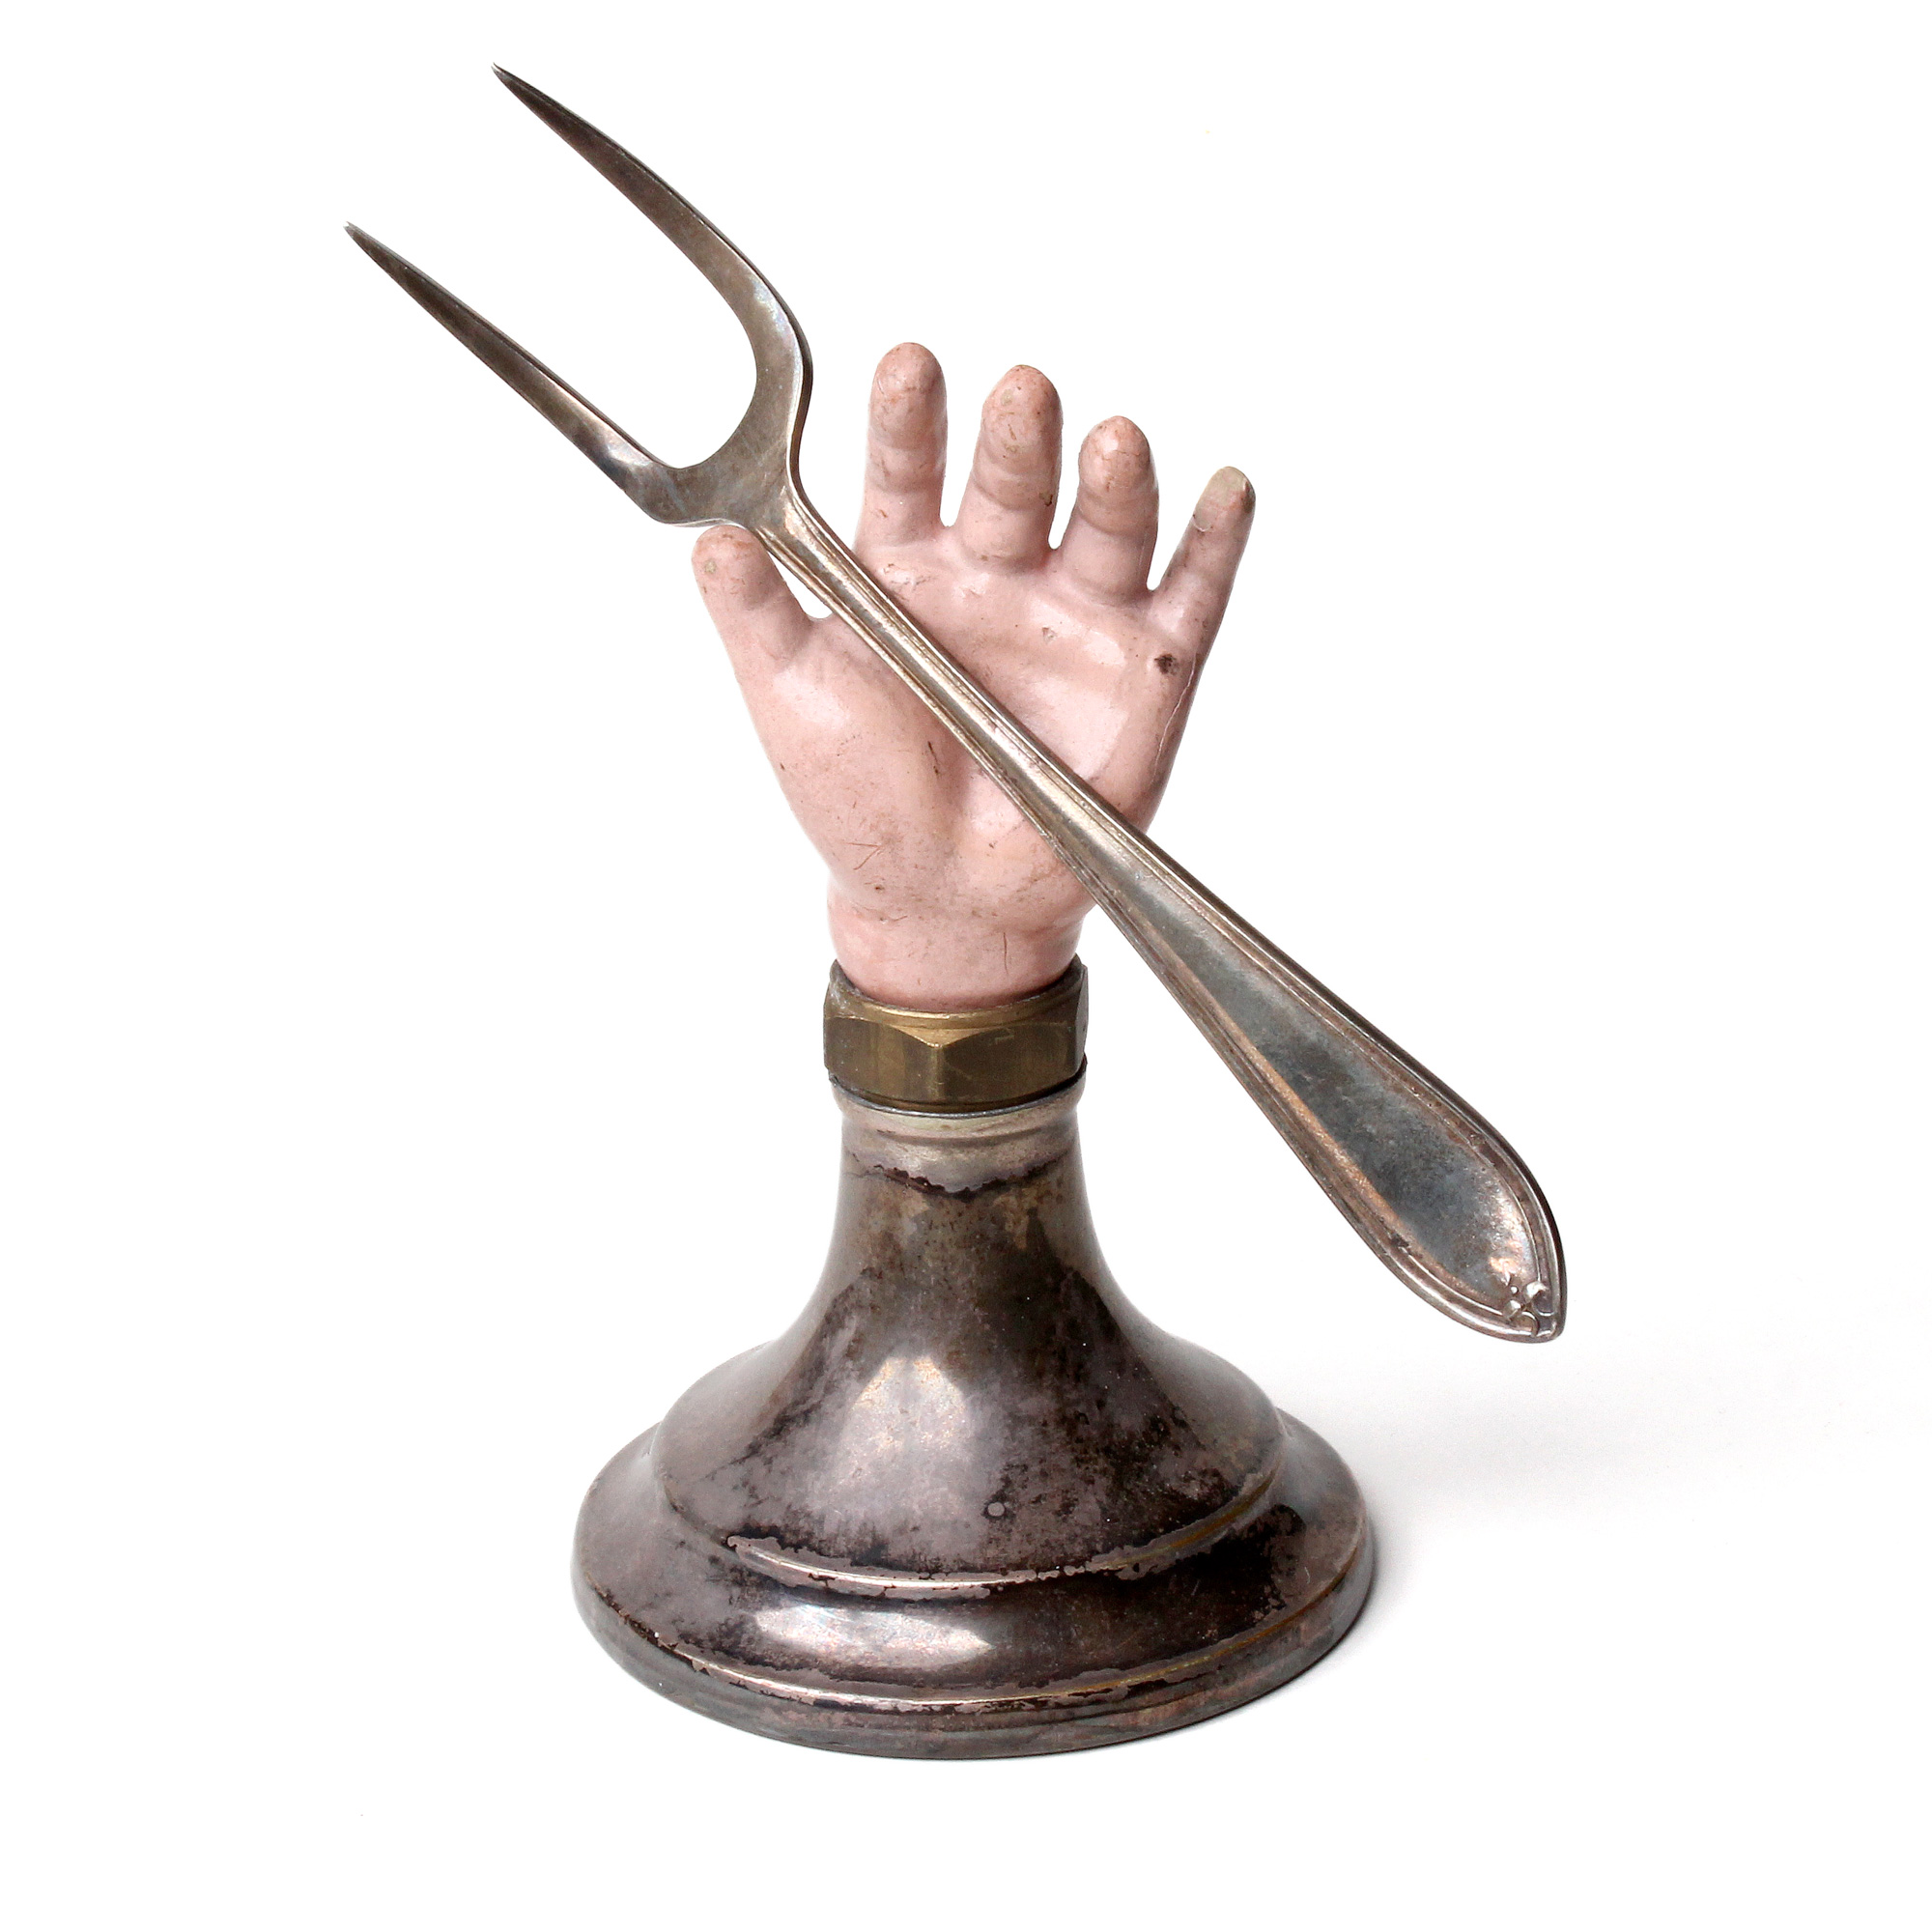 Hand Fork Sculpture by Anastasia Young Jewellery for The Lily Holds Firm